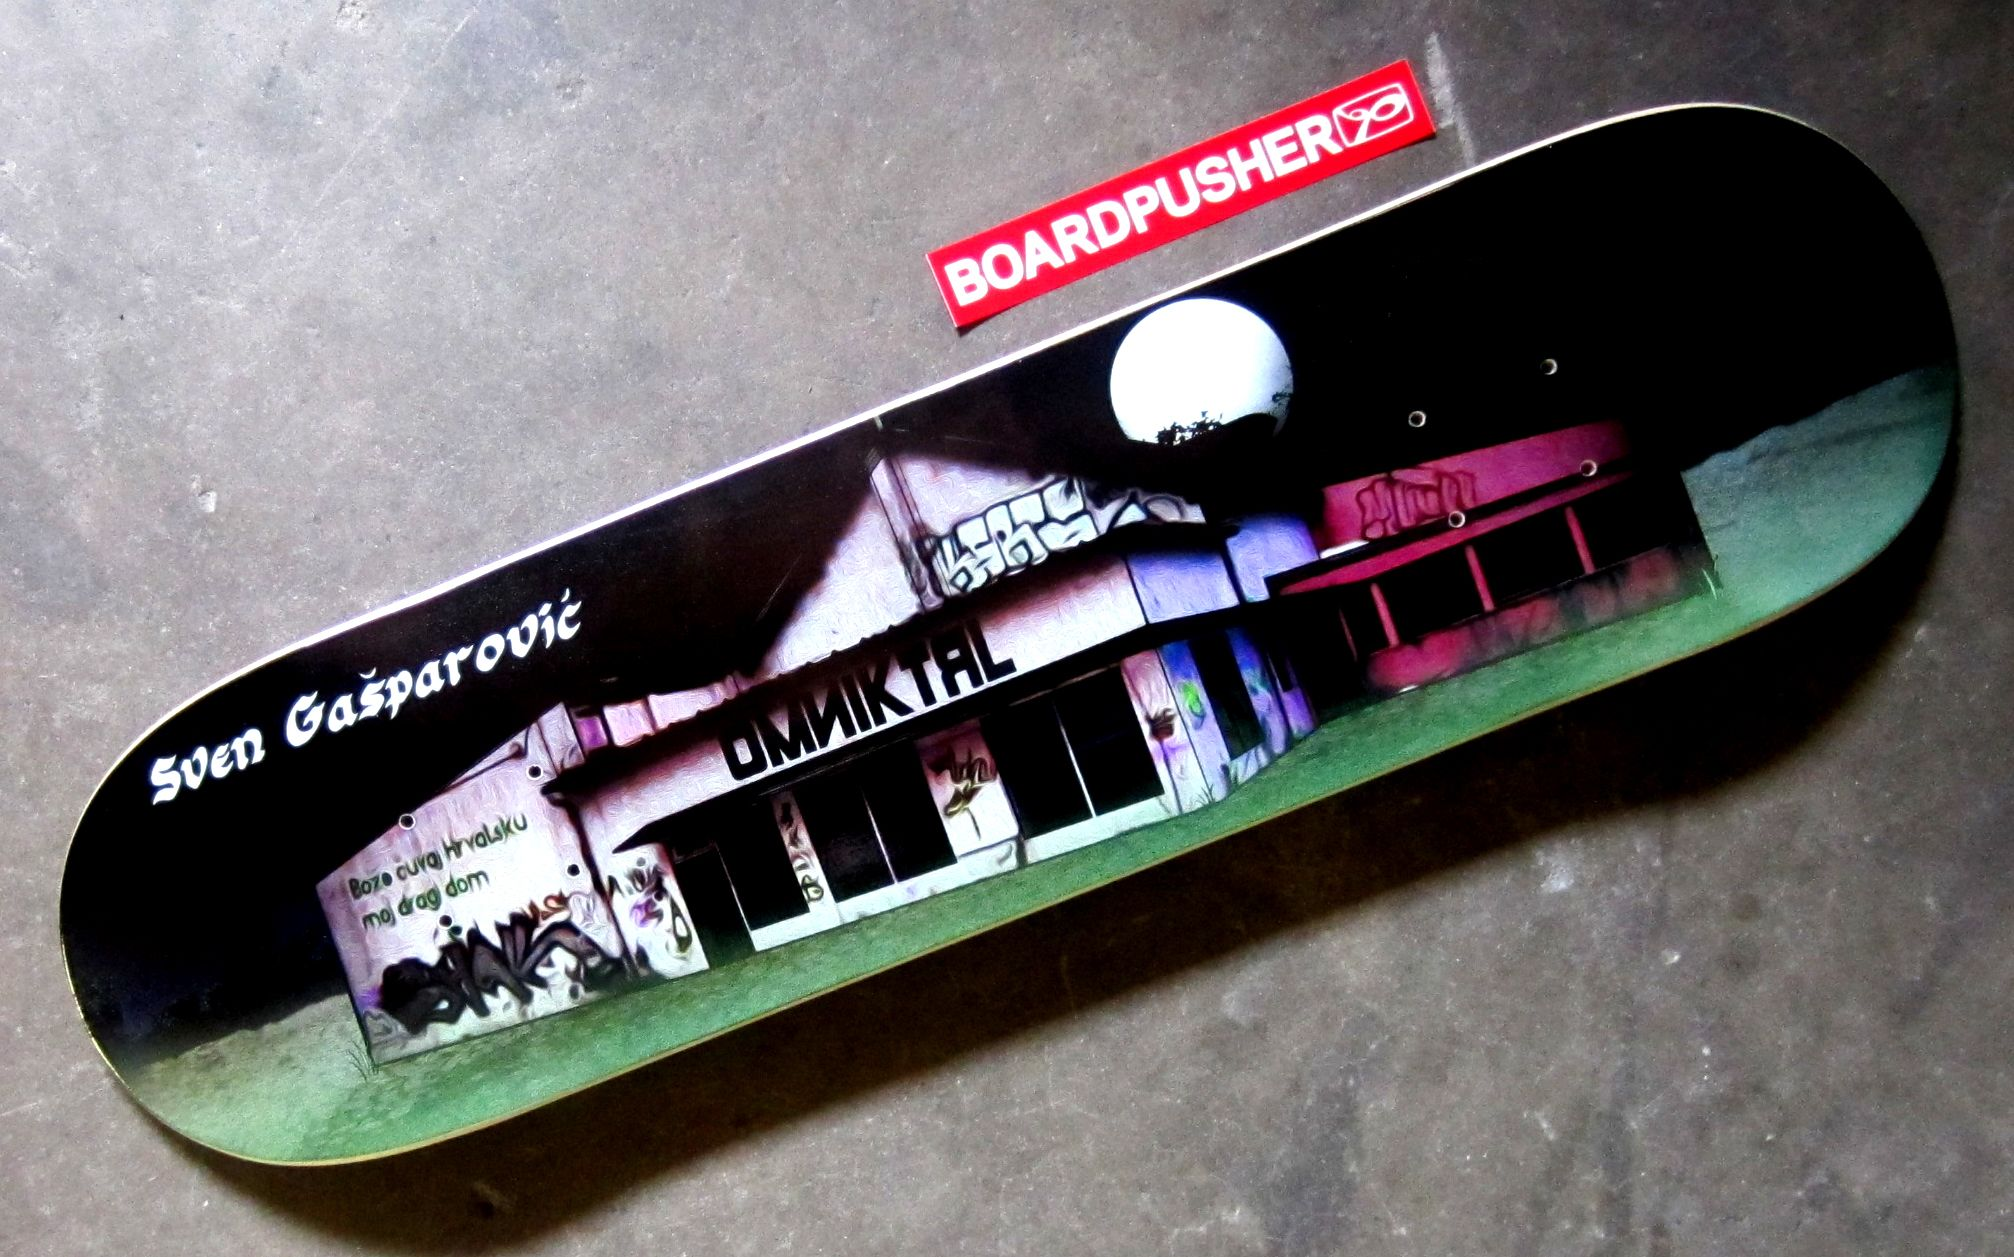 Setting for a creepy eastern European horror flick? No, today's Featured Deck is another sponsored Omniktrl rider. Sven Gasparovic's model depicts an abandoned warehouse in Zagreb that he and a few other Croatian skaters turned into a skatepark. Way to be resourceful, guys. You can pick this or some other Omniktrl decks up at www.BoardPusher.com/shop/OMNIKTRL.